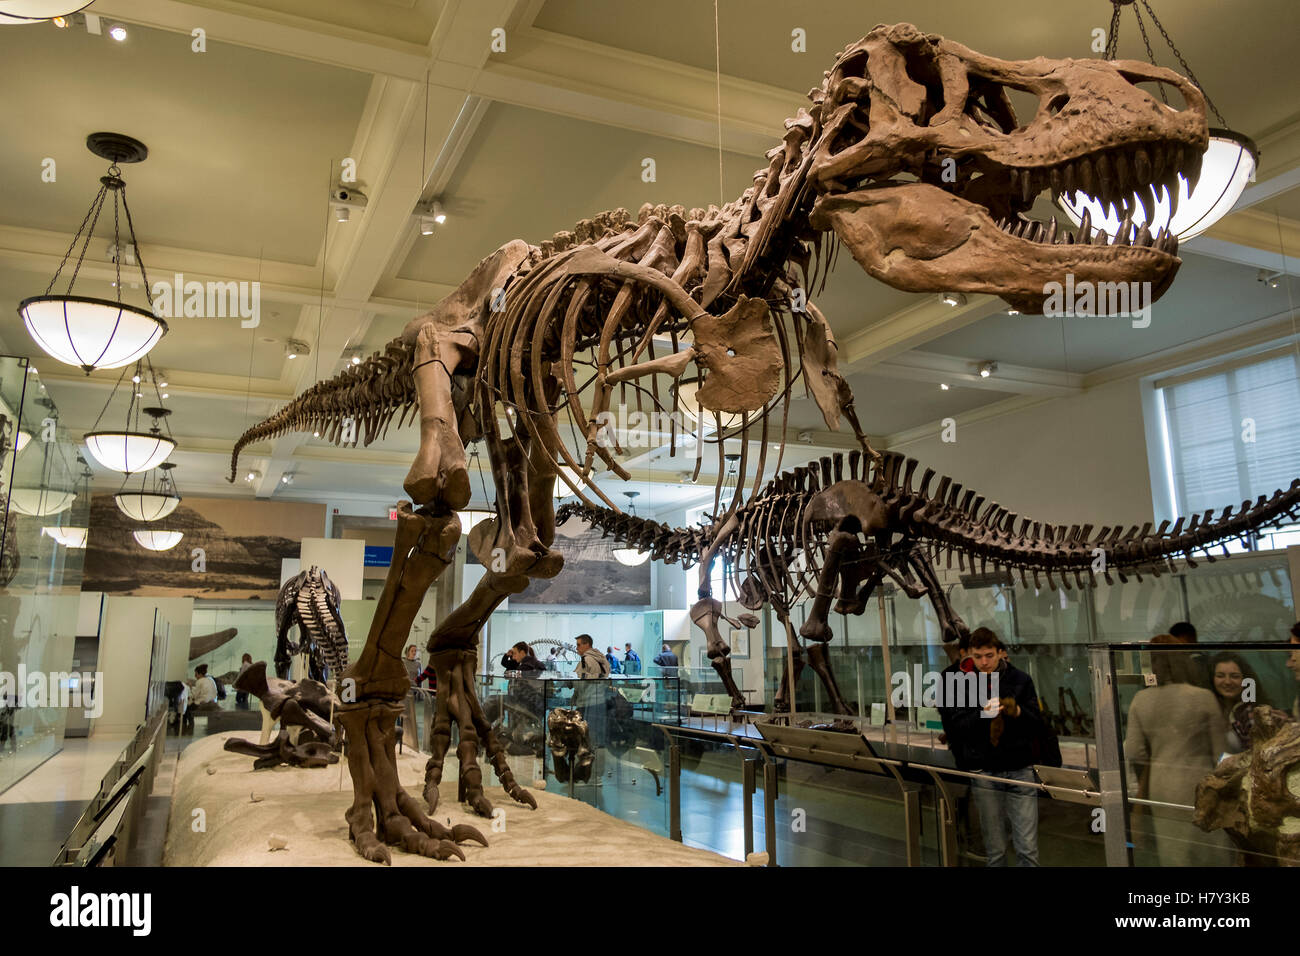 T Rex dinosaur skeleton in the New York Museum of Natural History - Stock Image